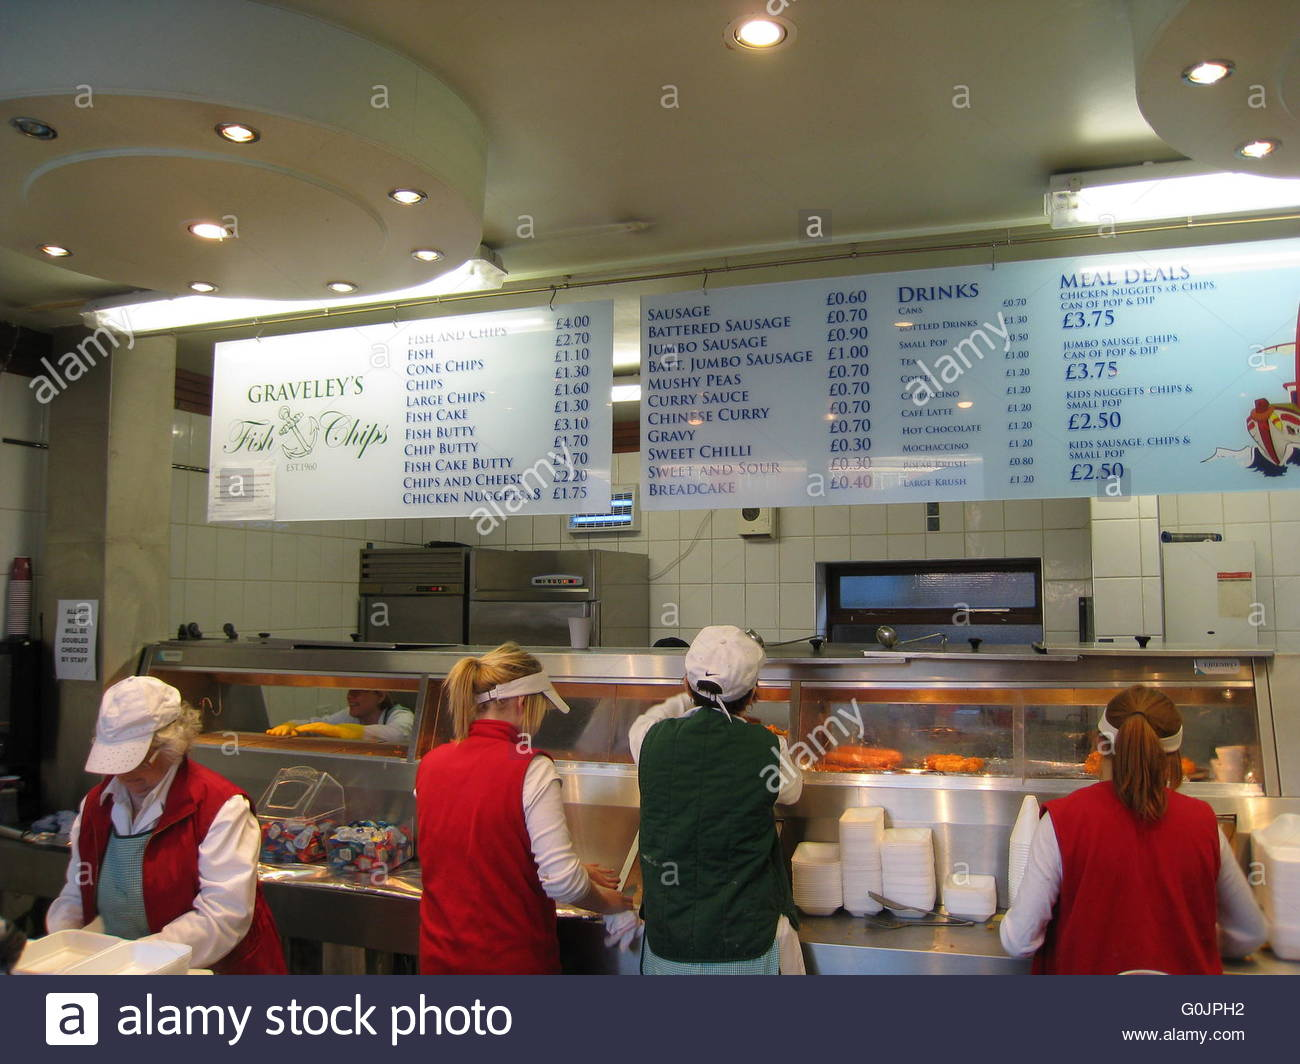 Price List Fish Chips In Stock Photos & Price List Fish Chips In Stock Images - Alamy